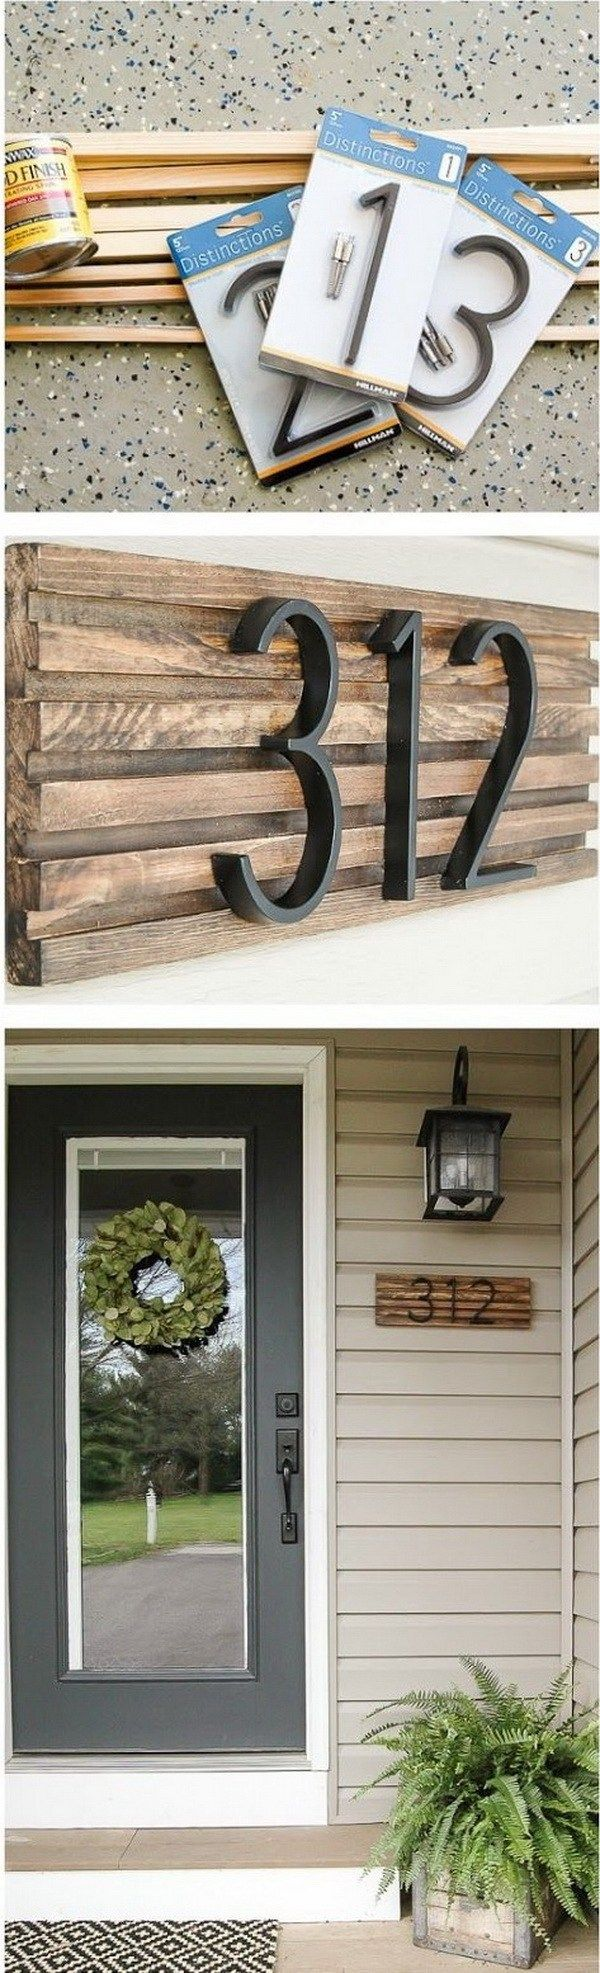 Ideas : DIY Rustic House Number Sign. House numbers give your home a finished look while also helping visitors find their way to your home. You can create your own custom house number sign and add some rustic charm to your home's exterior!